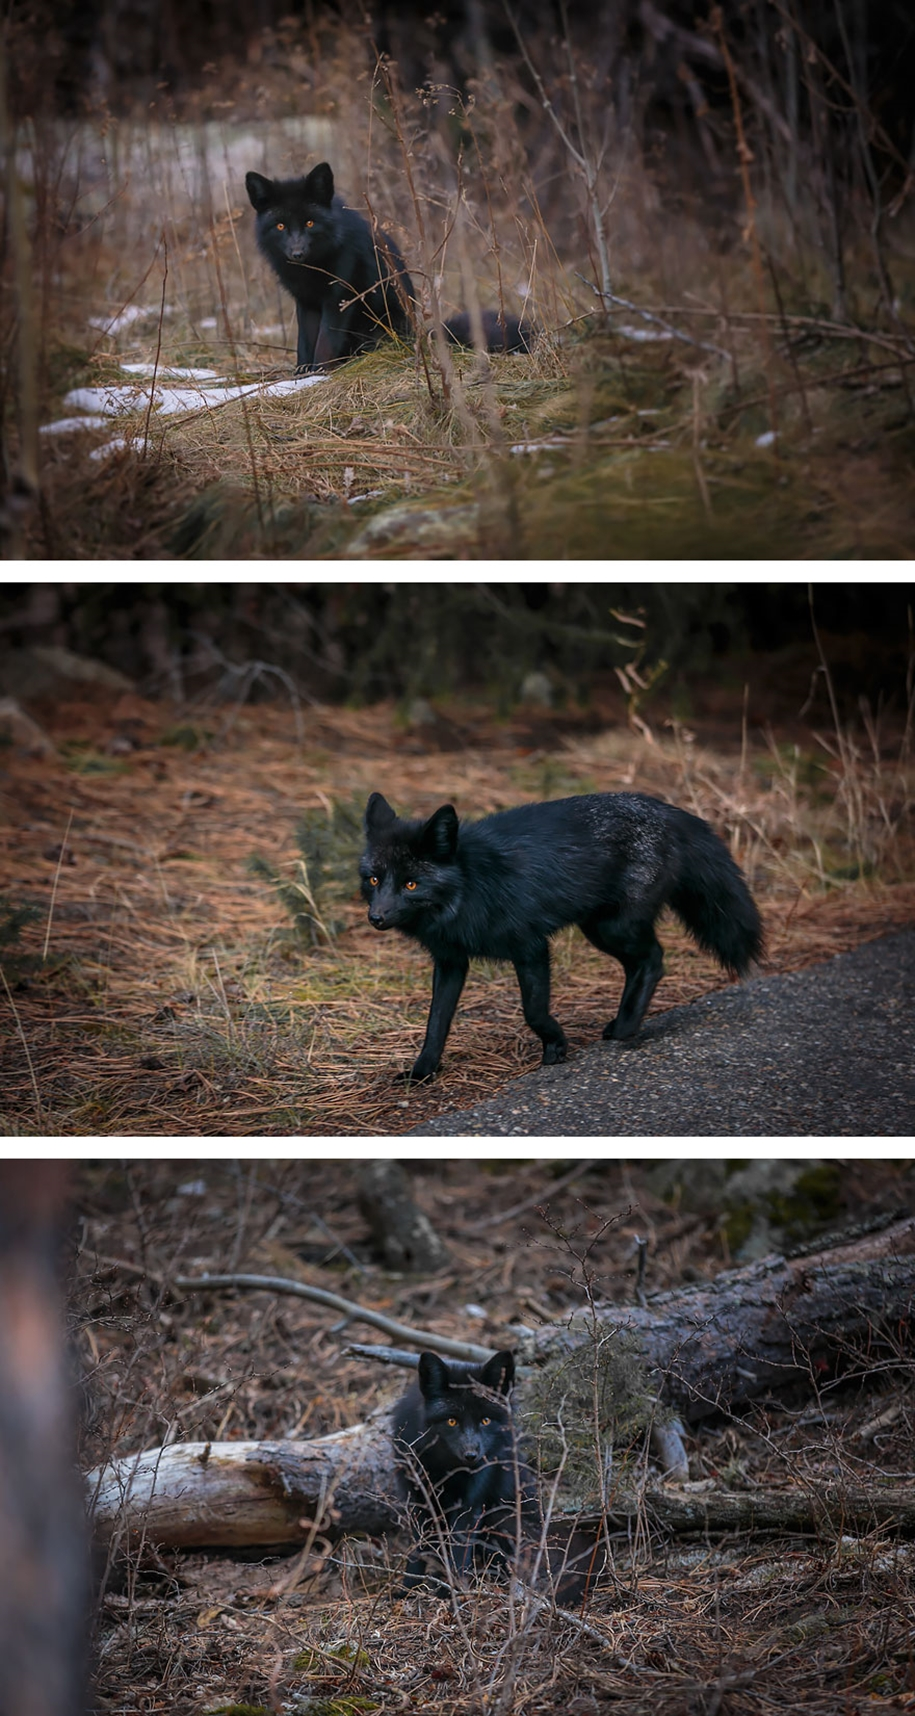 The rare beauty of the black Fox 05